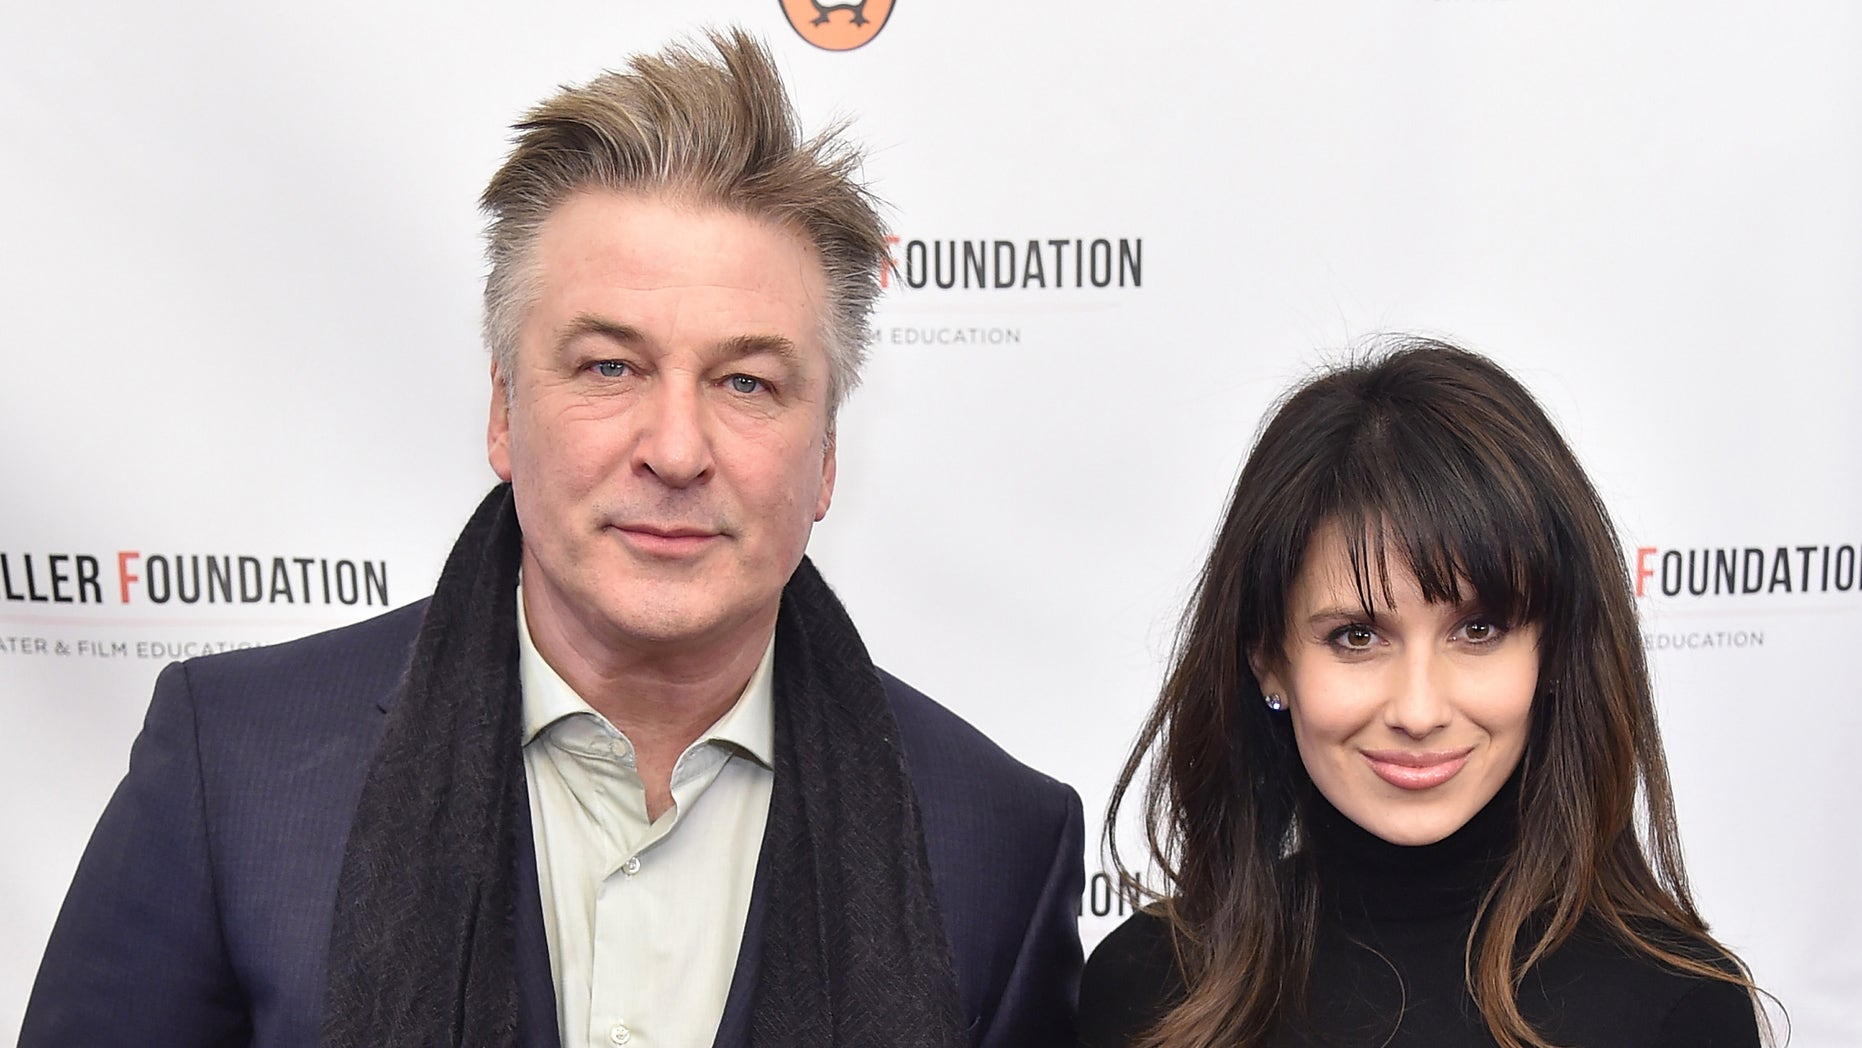 NEW YORK, NY - JANUARY 25:  Alec Baldwin (L) and Hilaria Thomas attend Arthur Miller - One Night 100 Years Benefit at Lyceum Theatre on January 25, 2016 in New York City.  (Photo by Michael Loccisano/Getty Images)